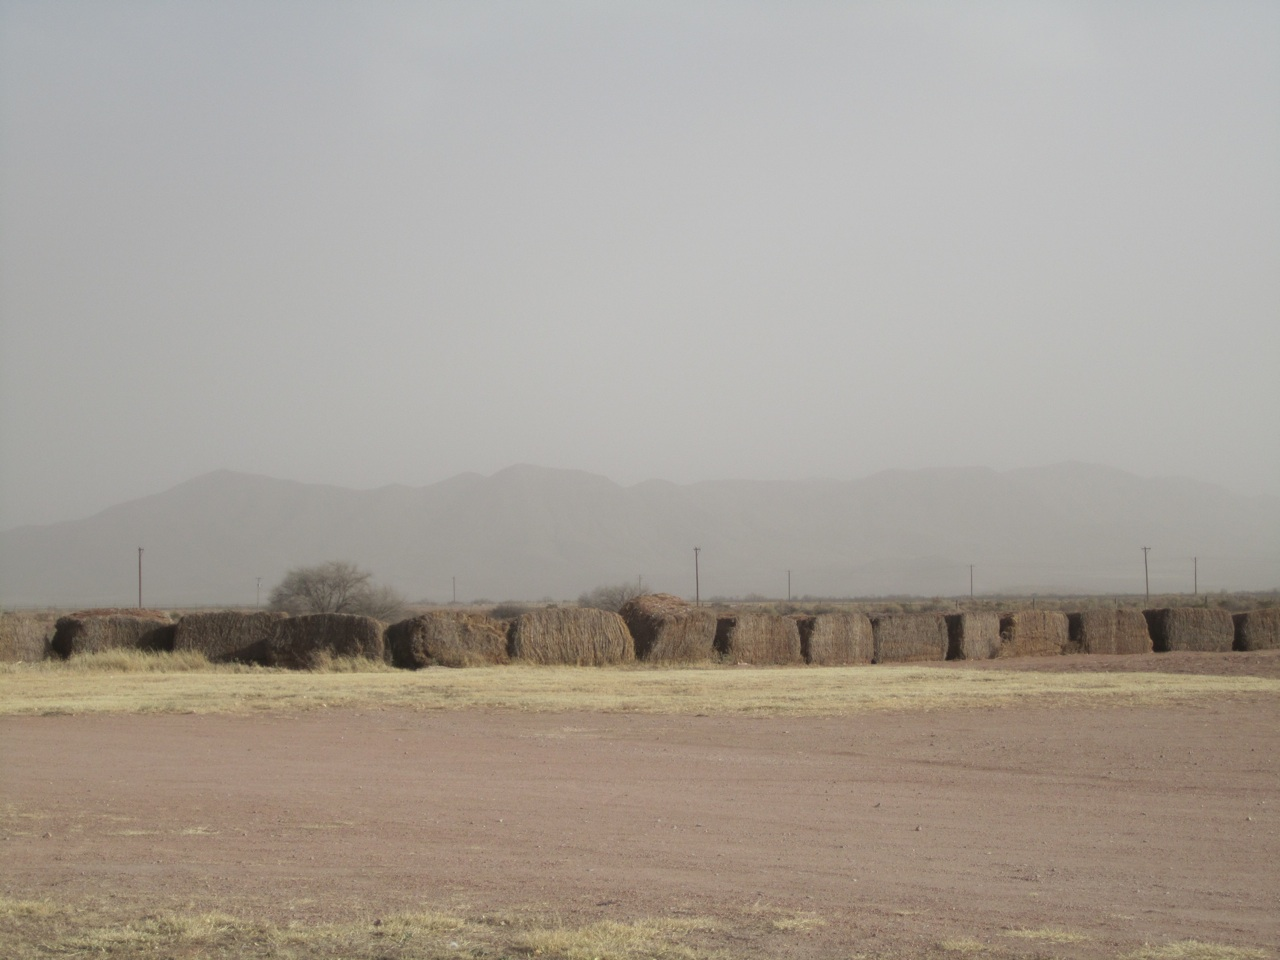 Mountains Starting To Disappear From The Dirt & Dust Flying Around